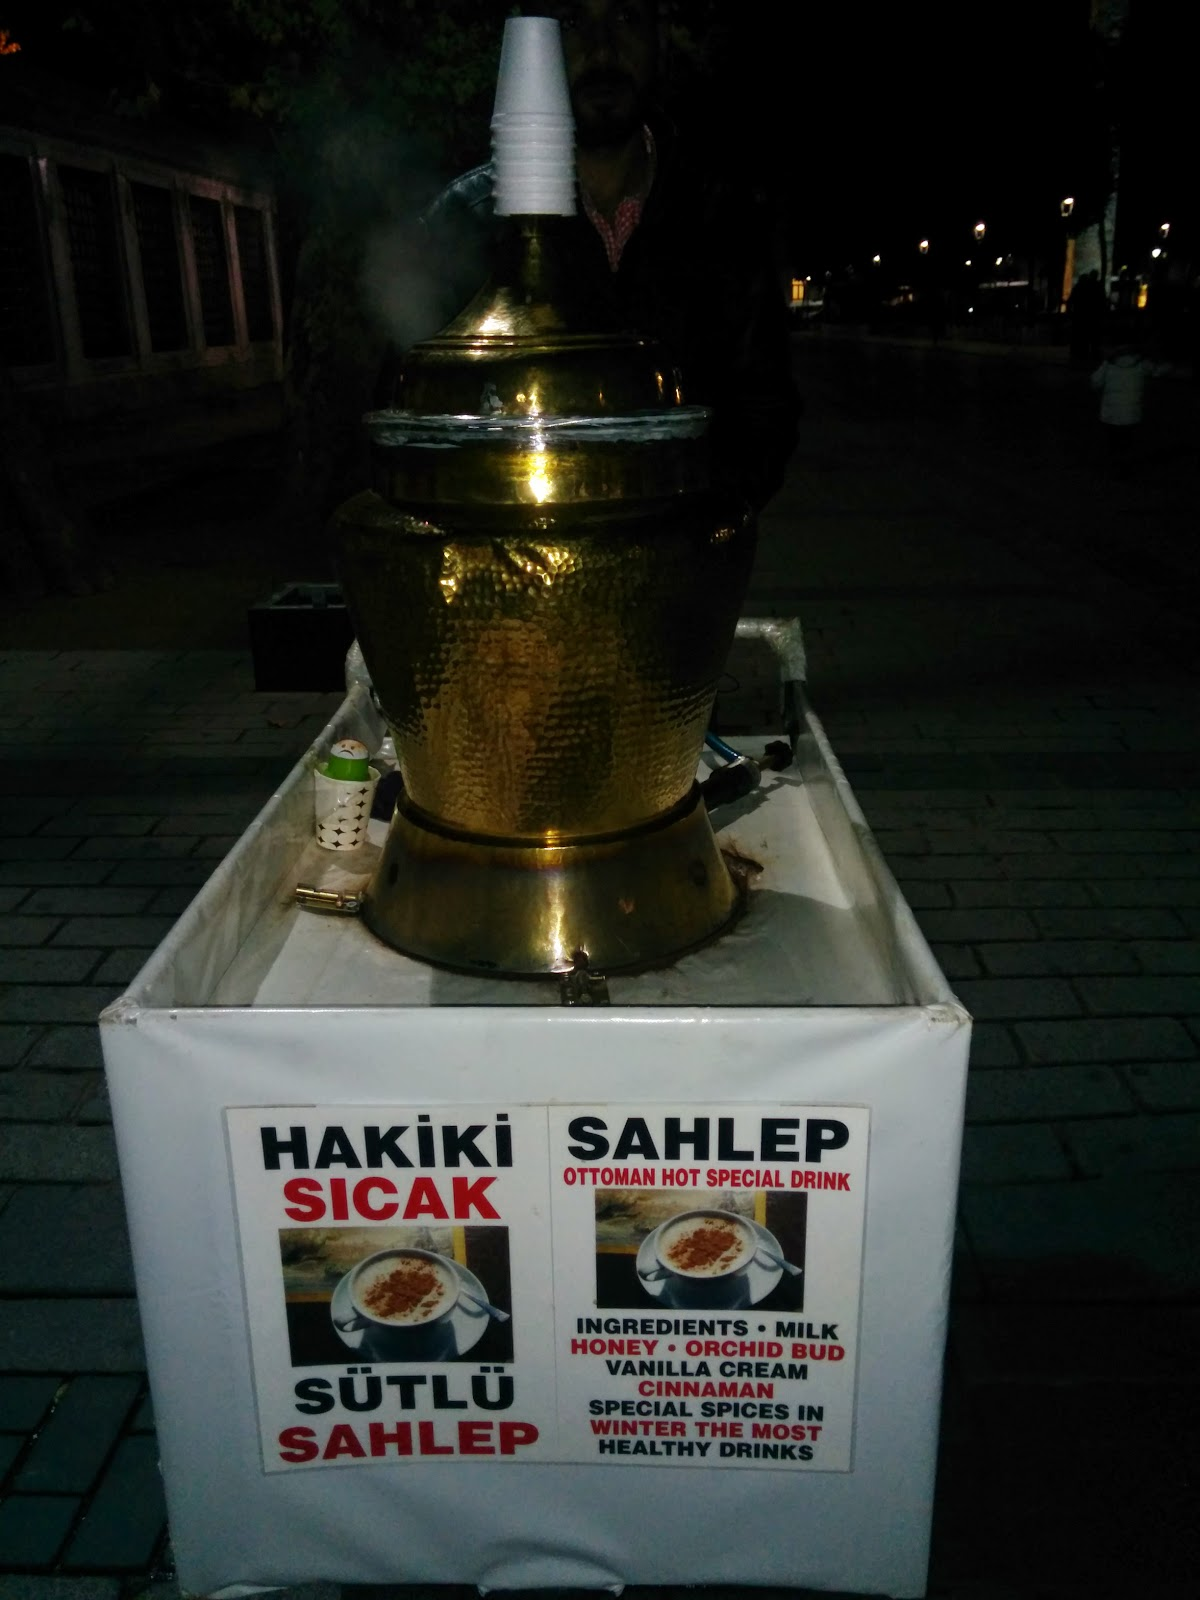 Street seller selling Sahlep at Istanbul, Turkey